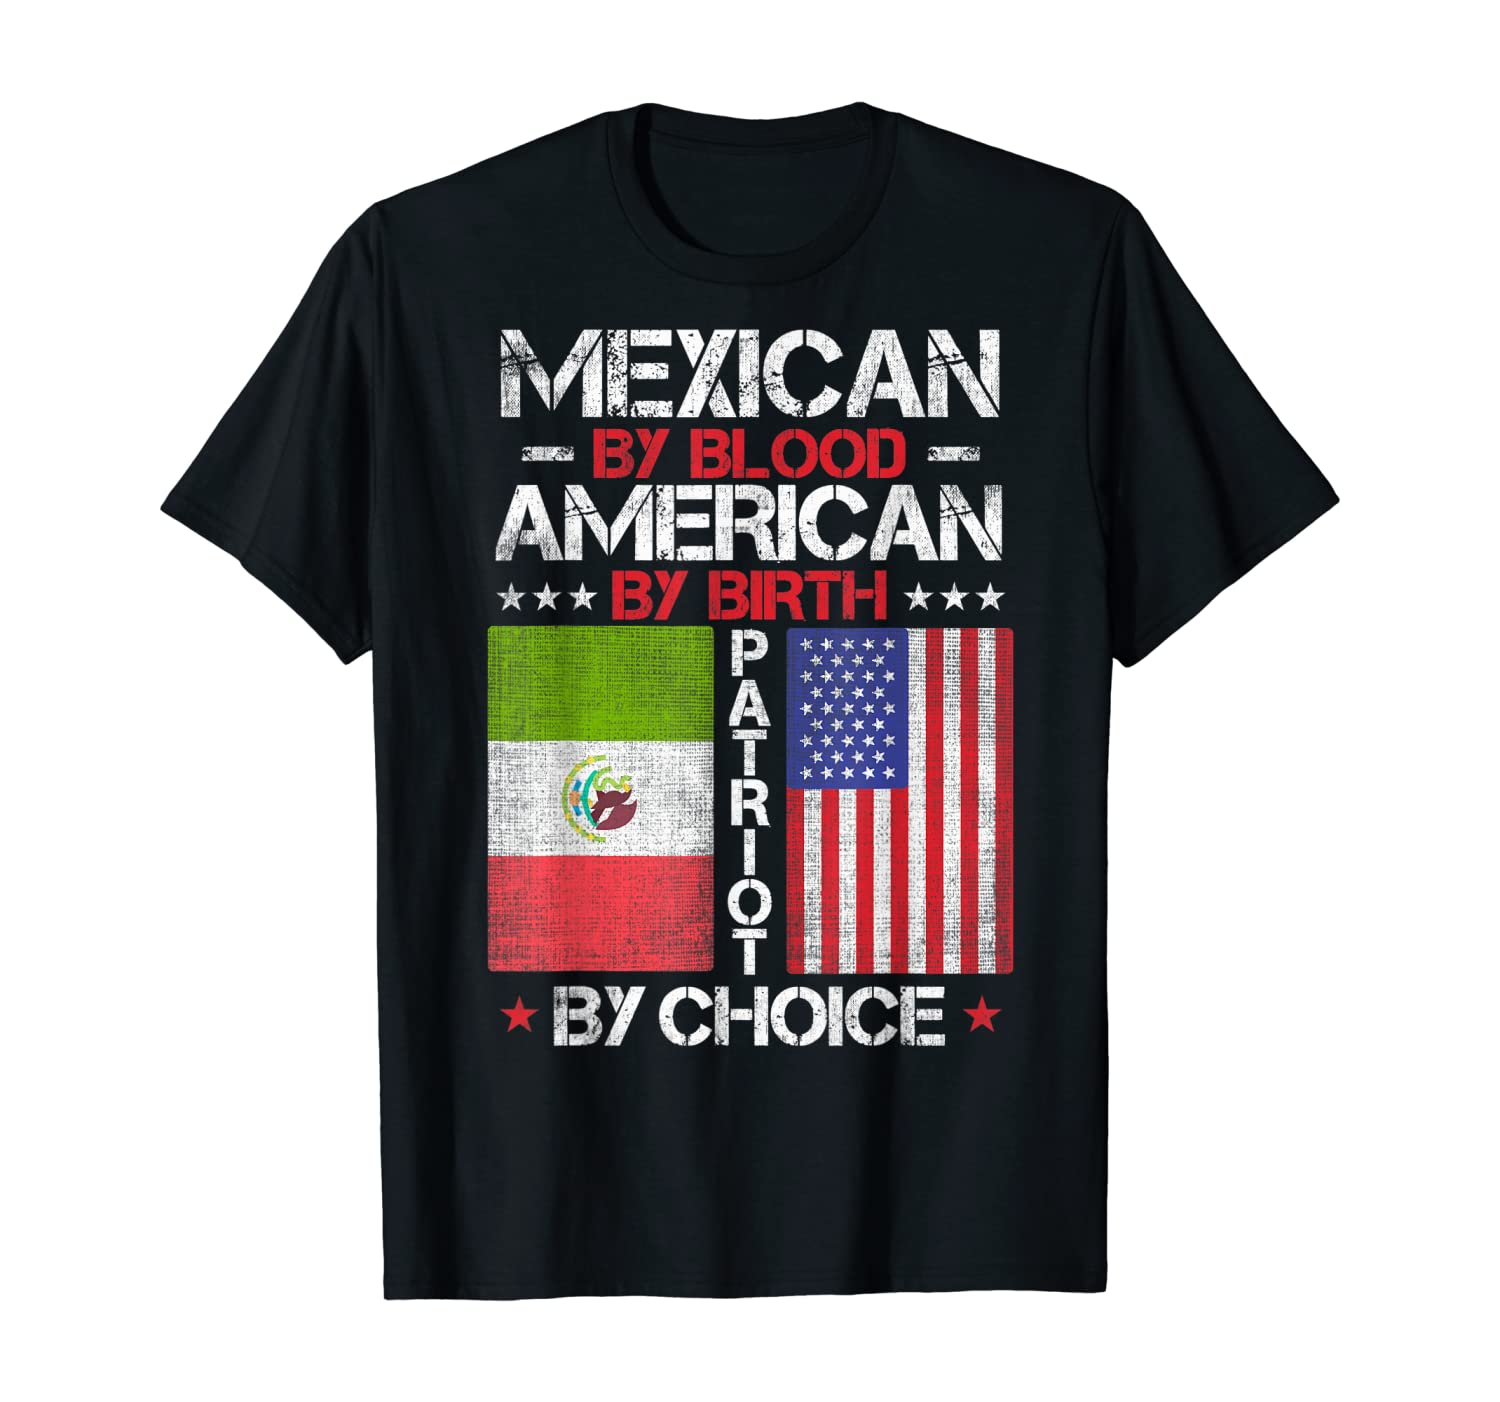 Mexican By Blood American By Birth Patriot By Choice T-Shirt